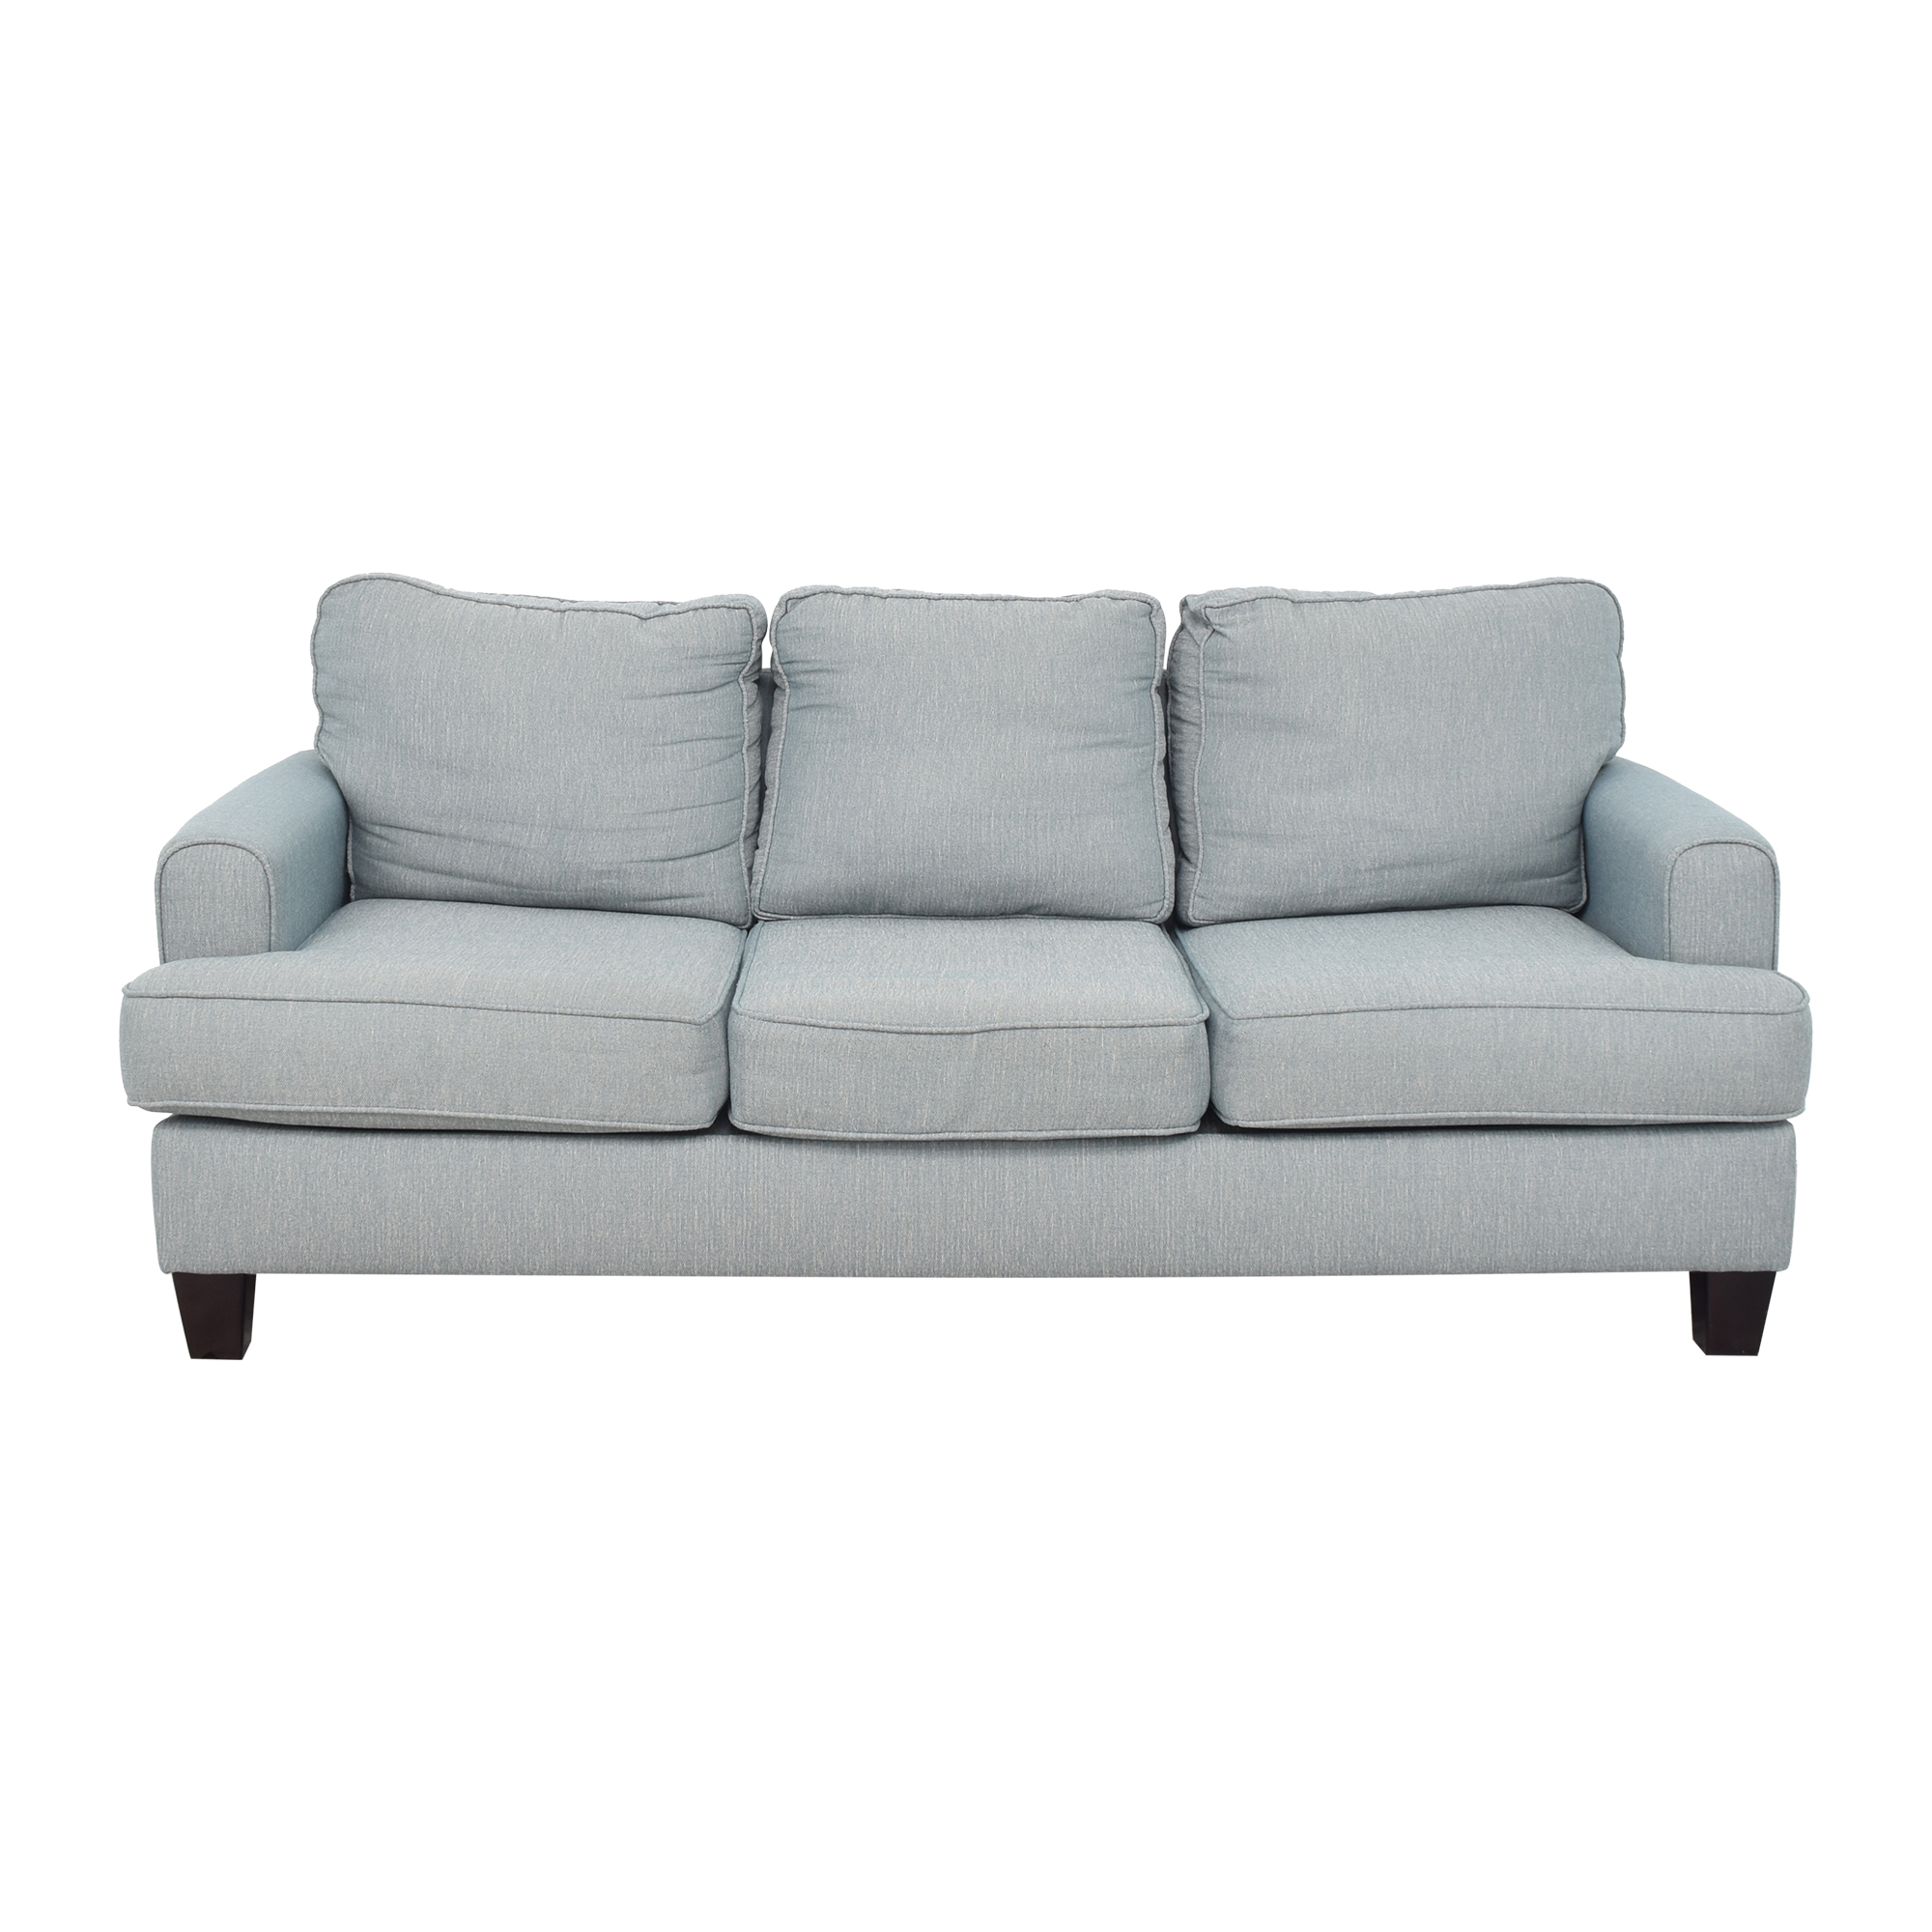 Raymour & Flanigan Raymour & Flanigan Willoughby Sofa used